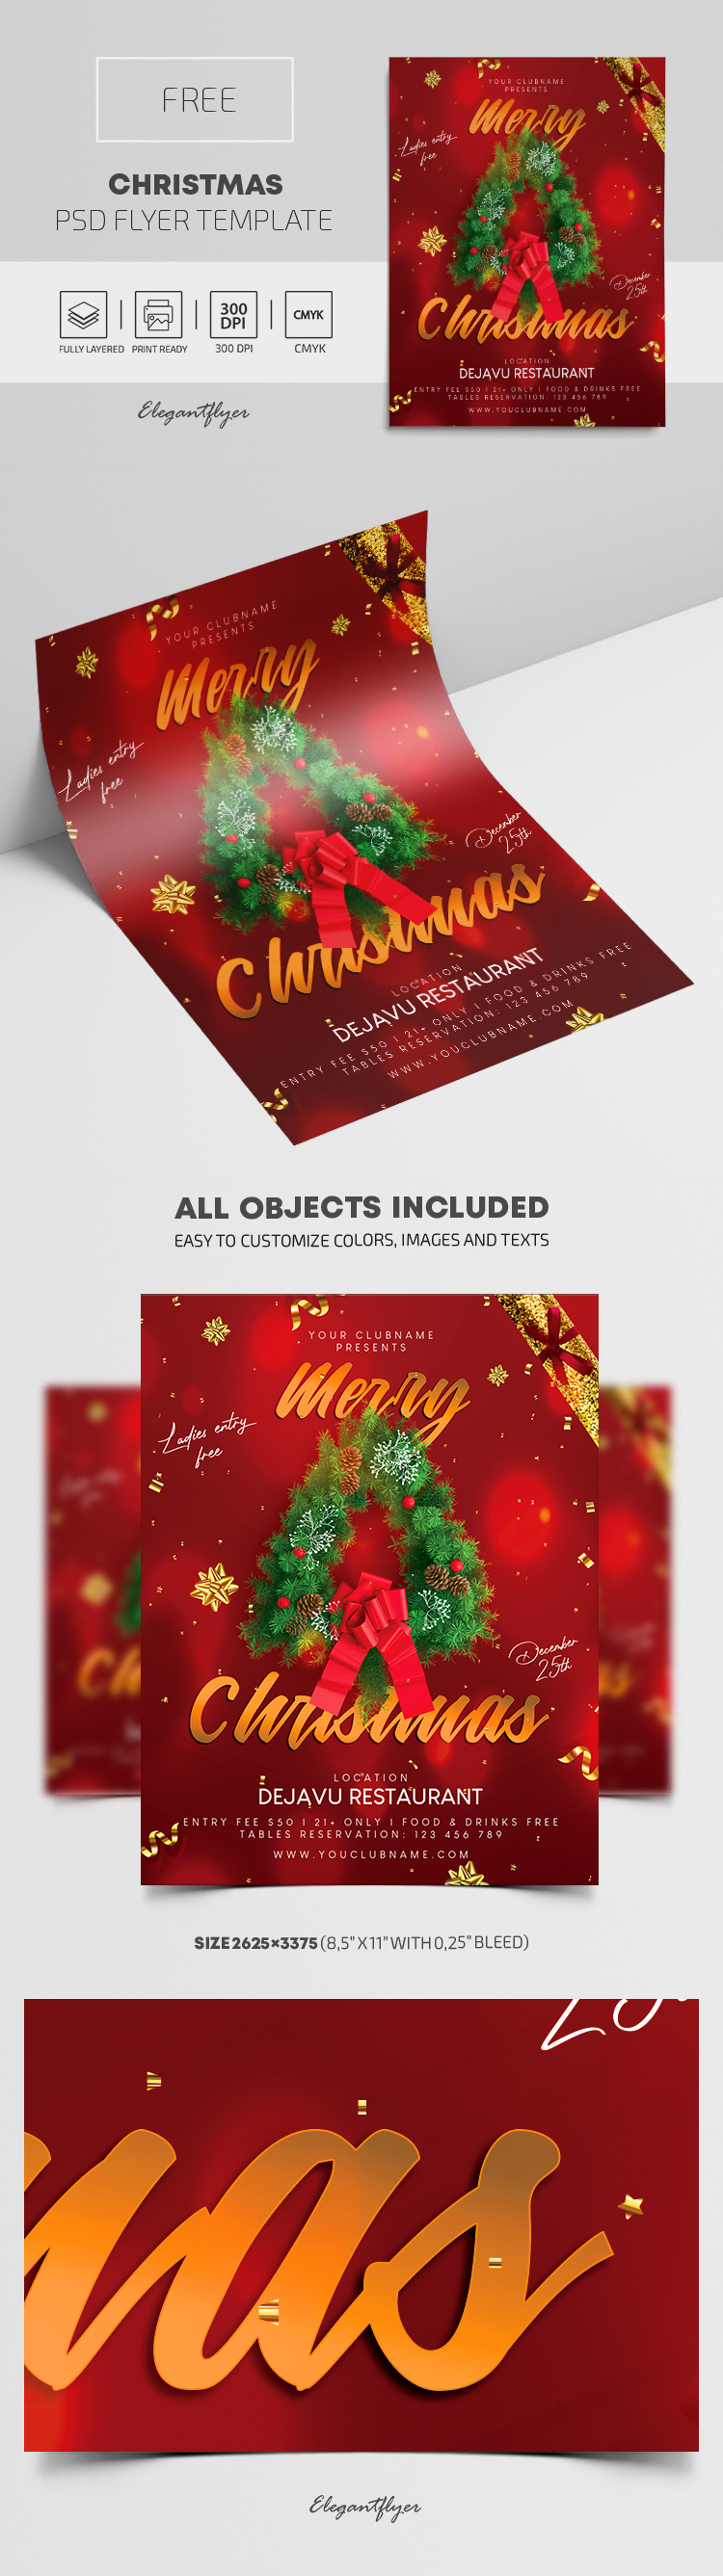 Christmas – Free Flyer PSD Template